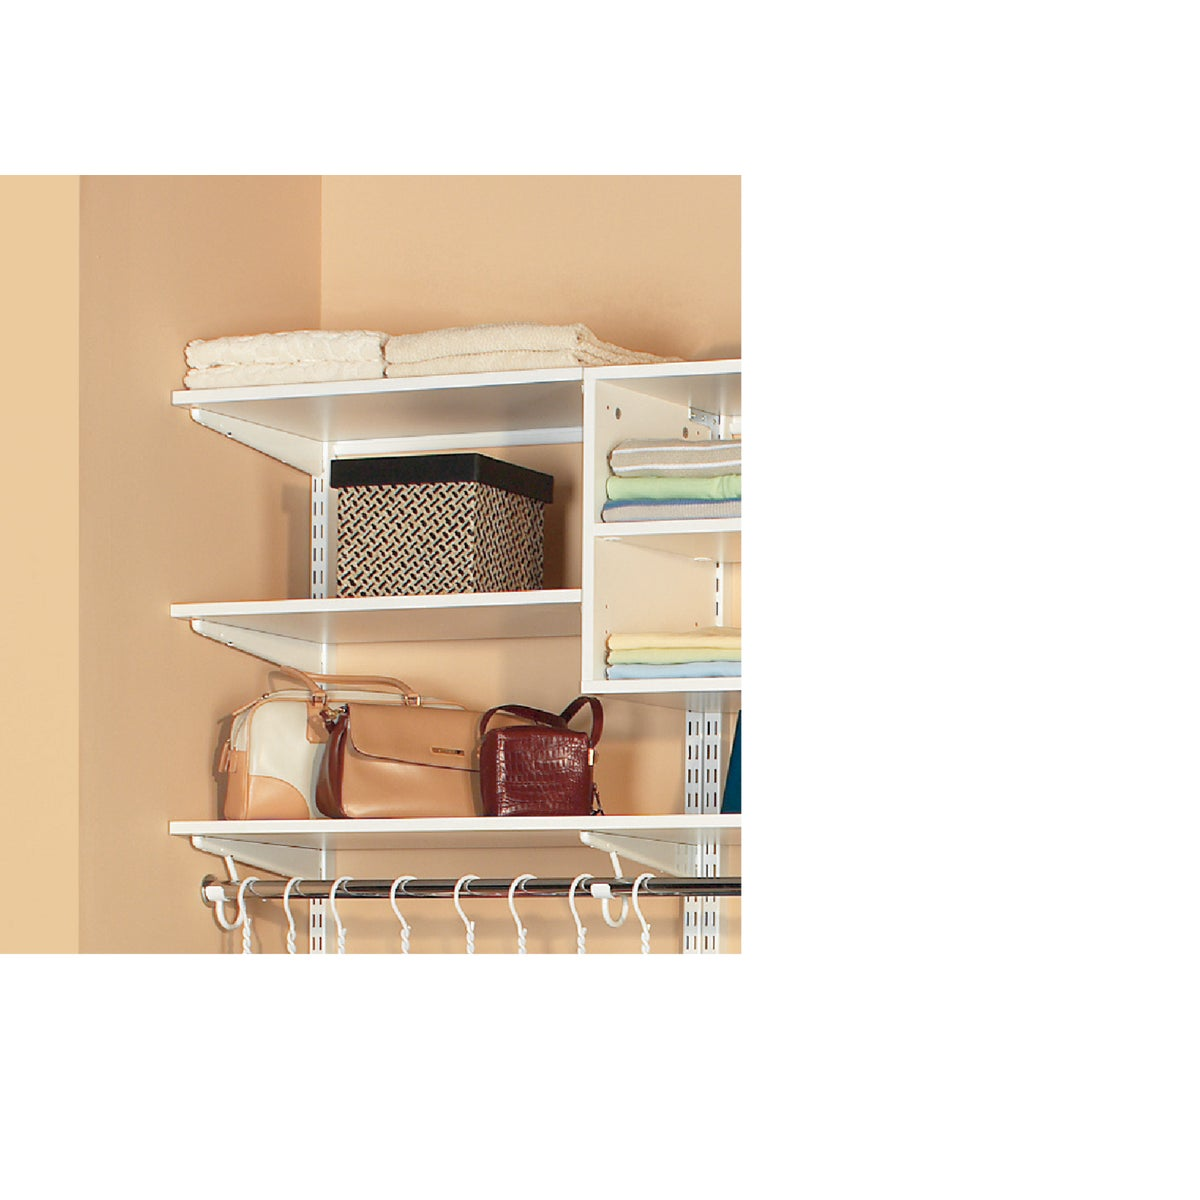 3' WHITE MELAMINE SHELF